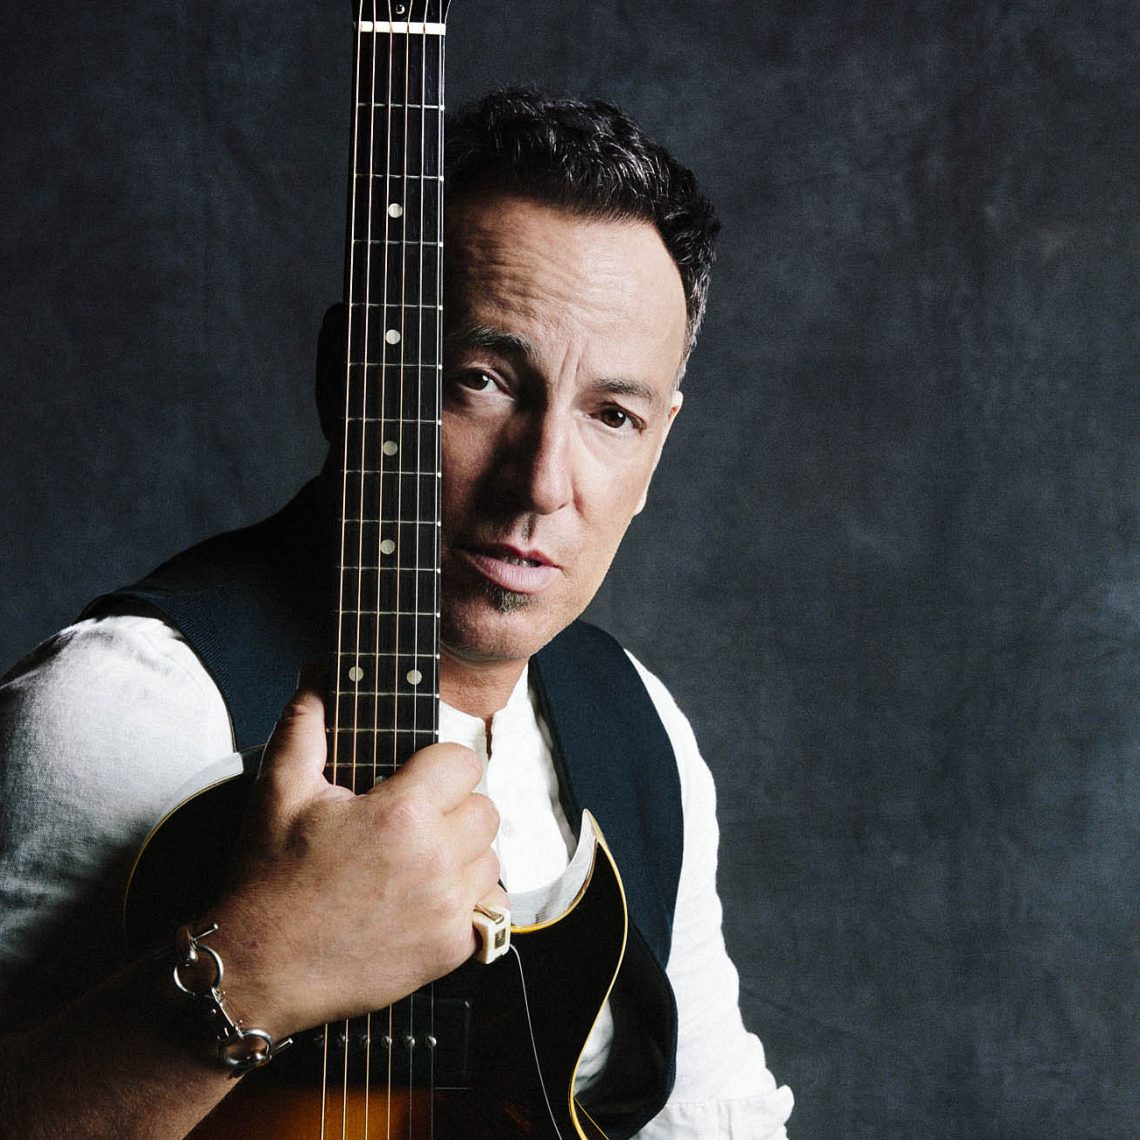 Bruce Springsteen (Photo by Danny Clinch)